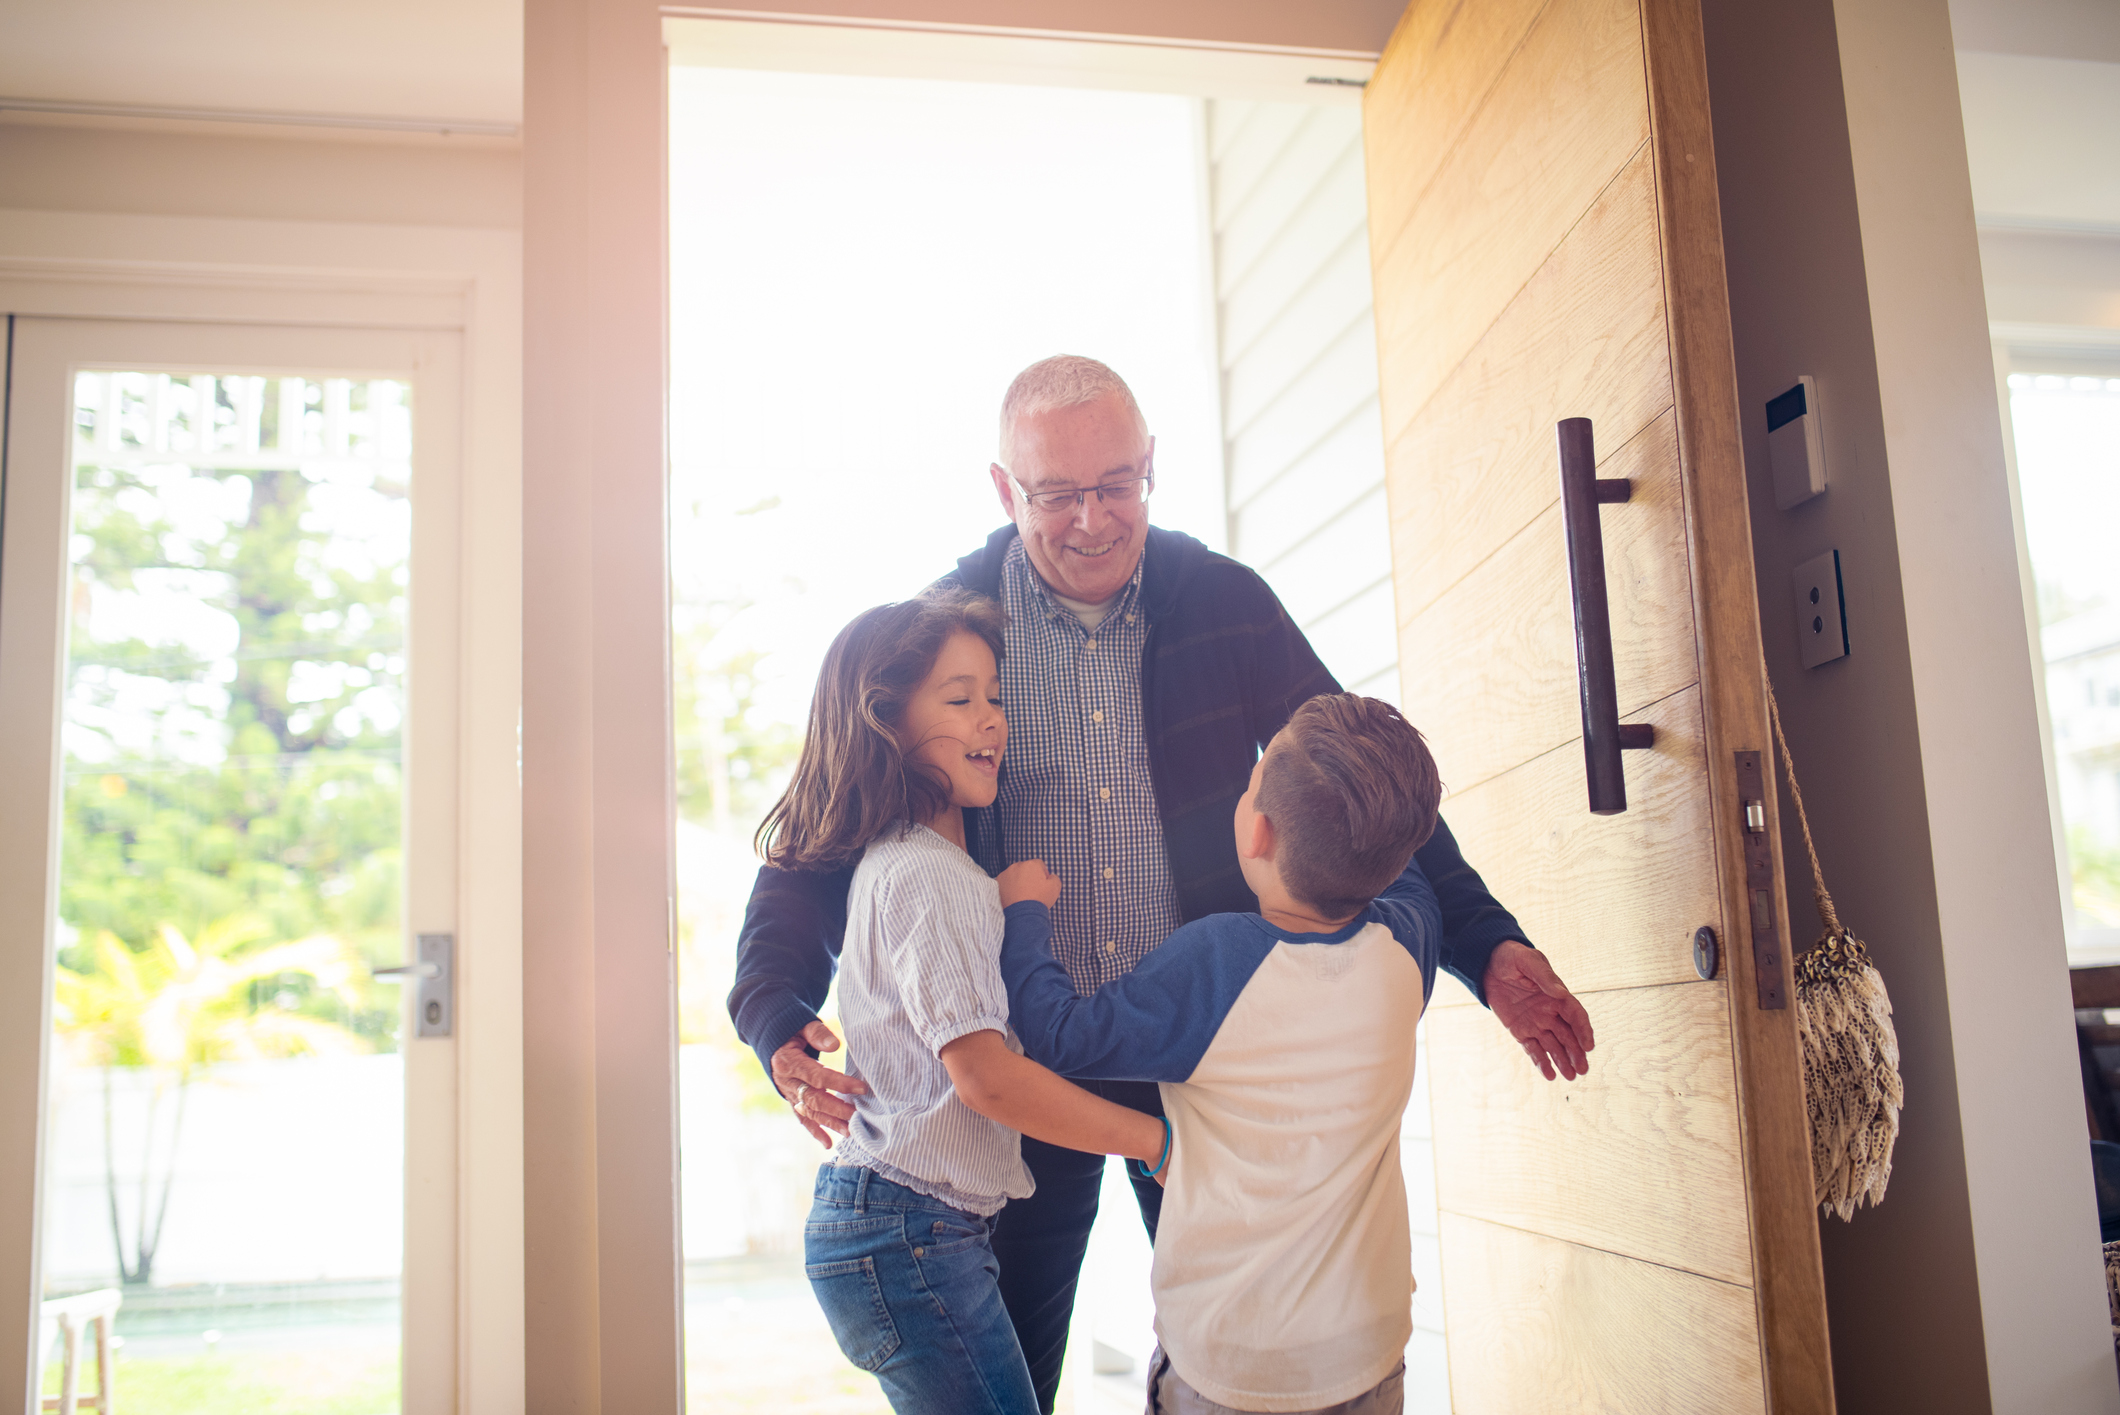 grandparent visitation Some states are very strict and only allow grandparents to petition the court   state law that allowed any interested third party to seek visitation rights was too  broad  in some cases, it may be best to wait until the parents have sorted out  their.